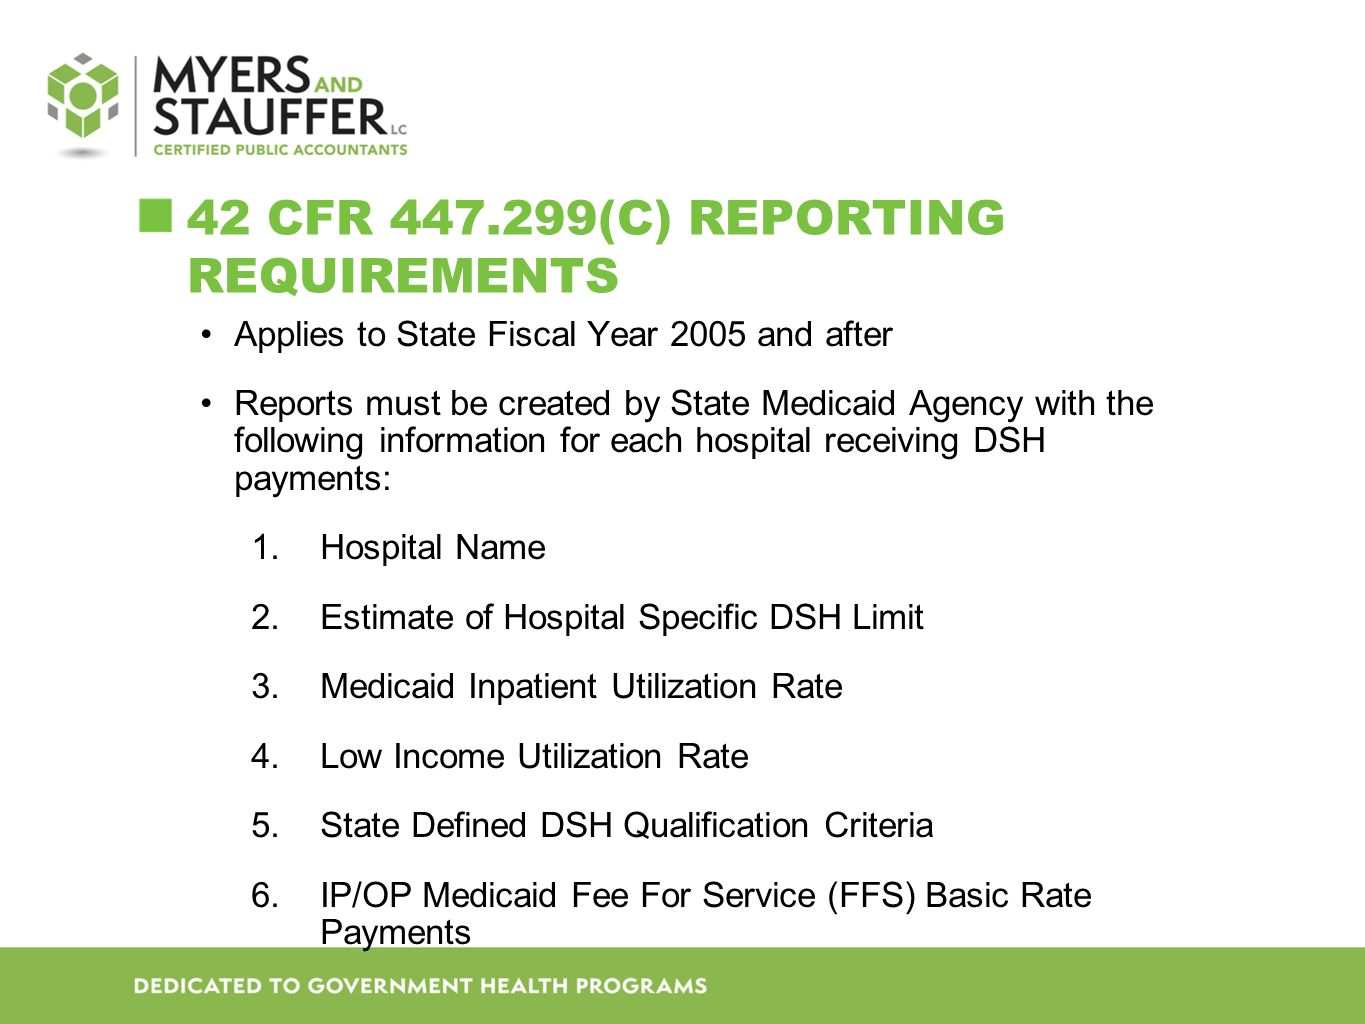 MEDICAID MATERNITY WAIVER PATIENT DETAIL Request list # 13 Inpatient and Outpatient Medicaid Maternity Waiver MCO Discharge Dates within MSP year Used in calculation of Medicaid Uncompensated Care